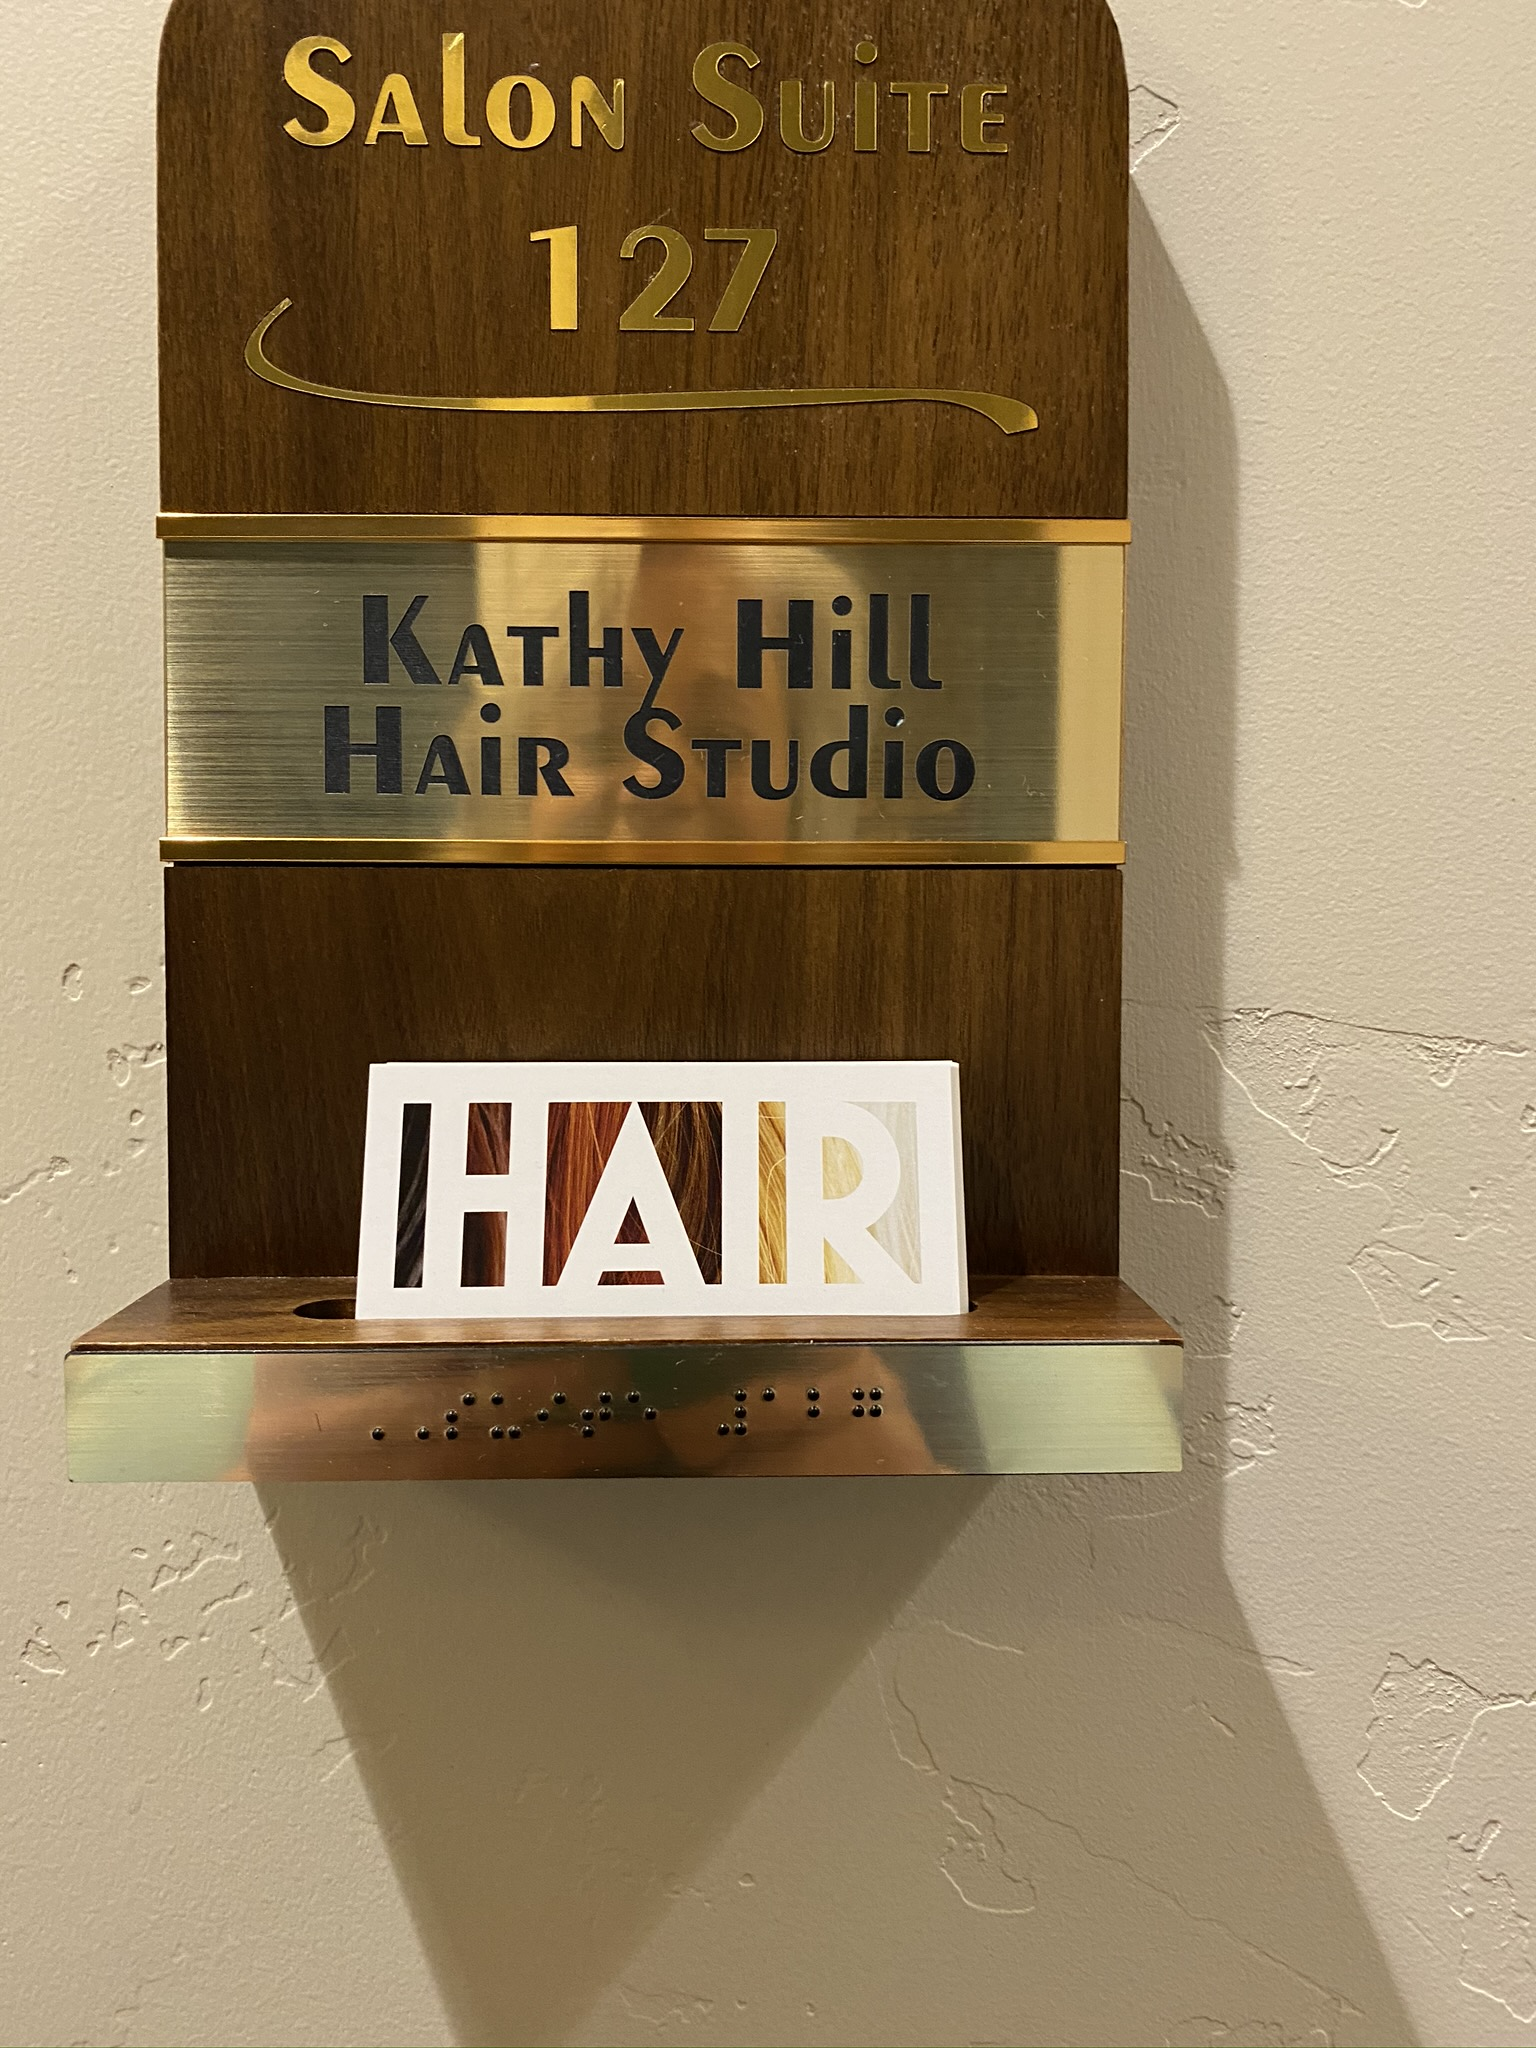 Kathy Hill Hair Studio